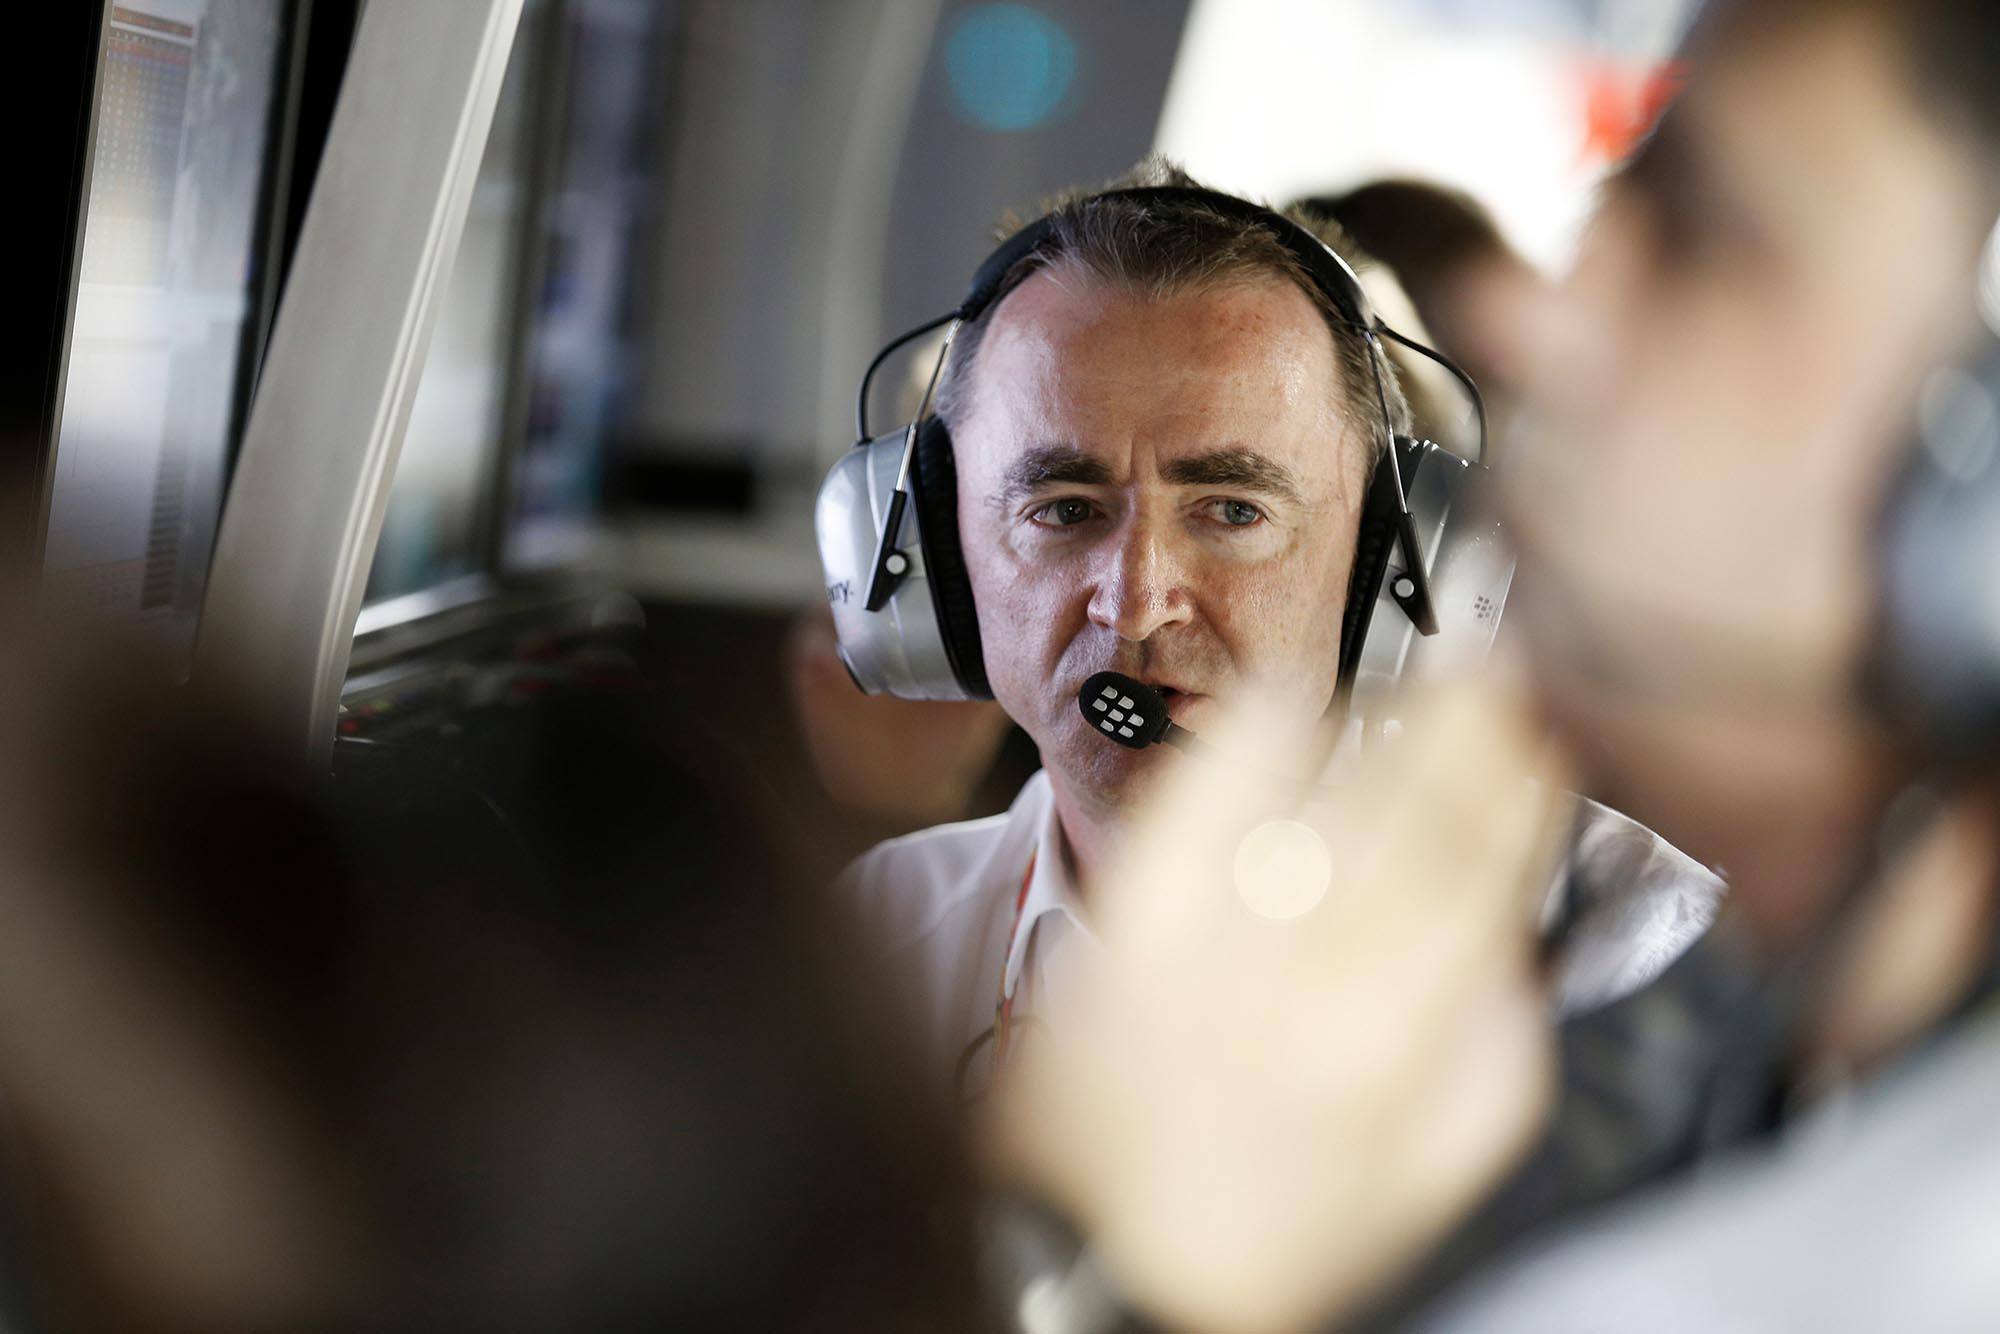 Paddy Lowe on the Mercedes pit wall at Bahrain Grand Prix 2014